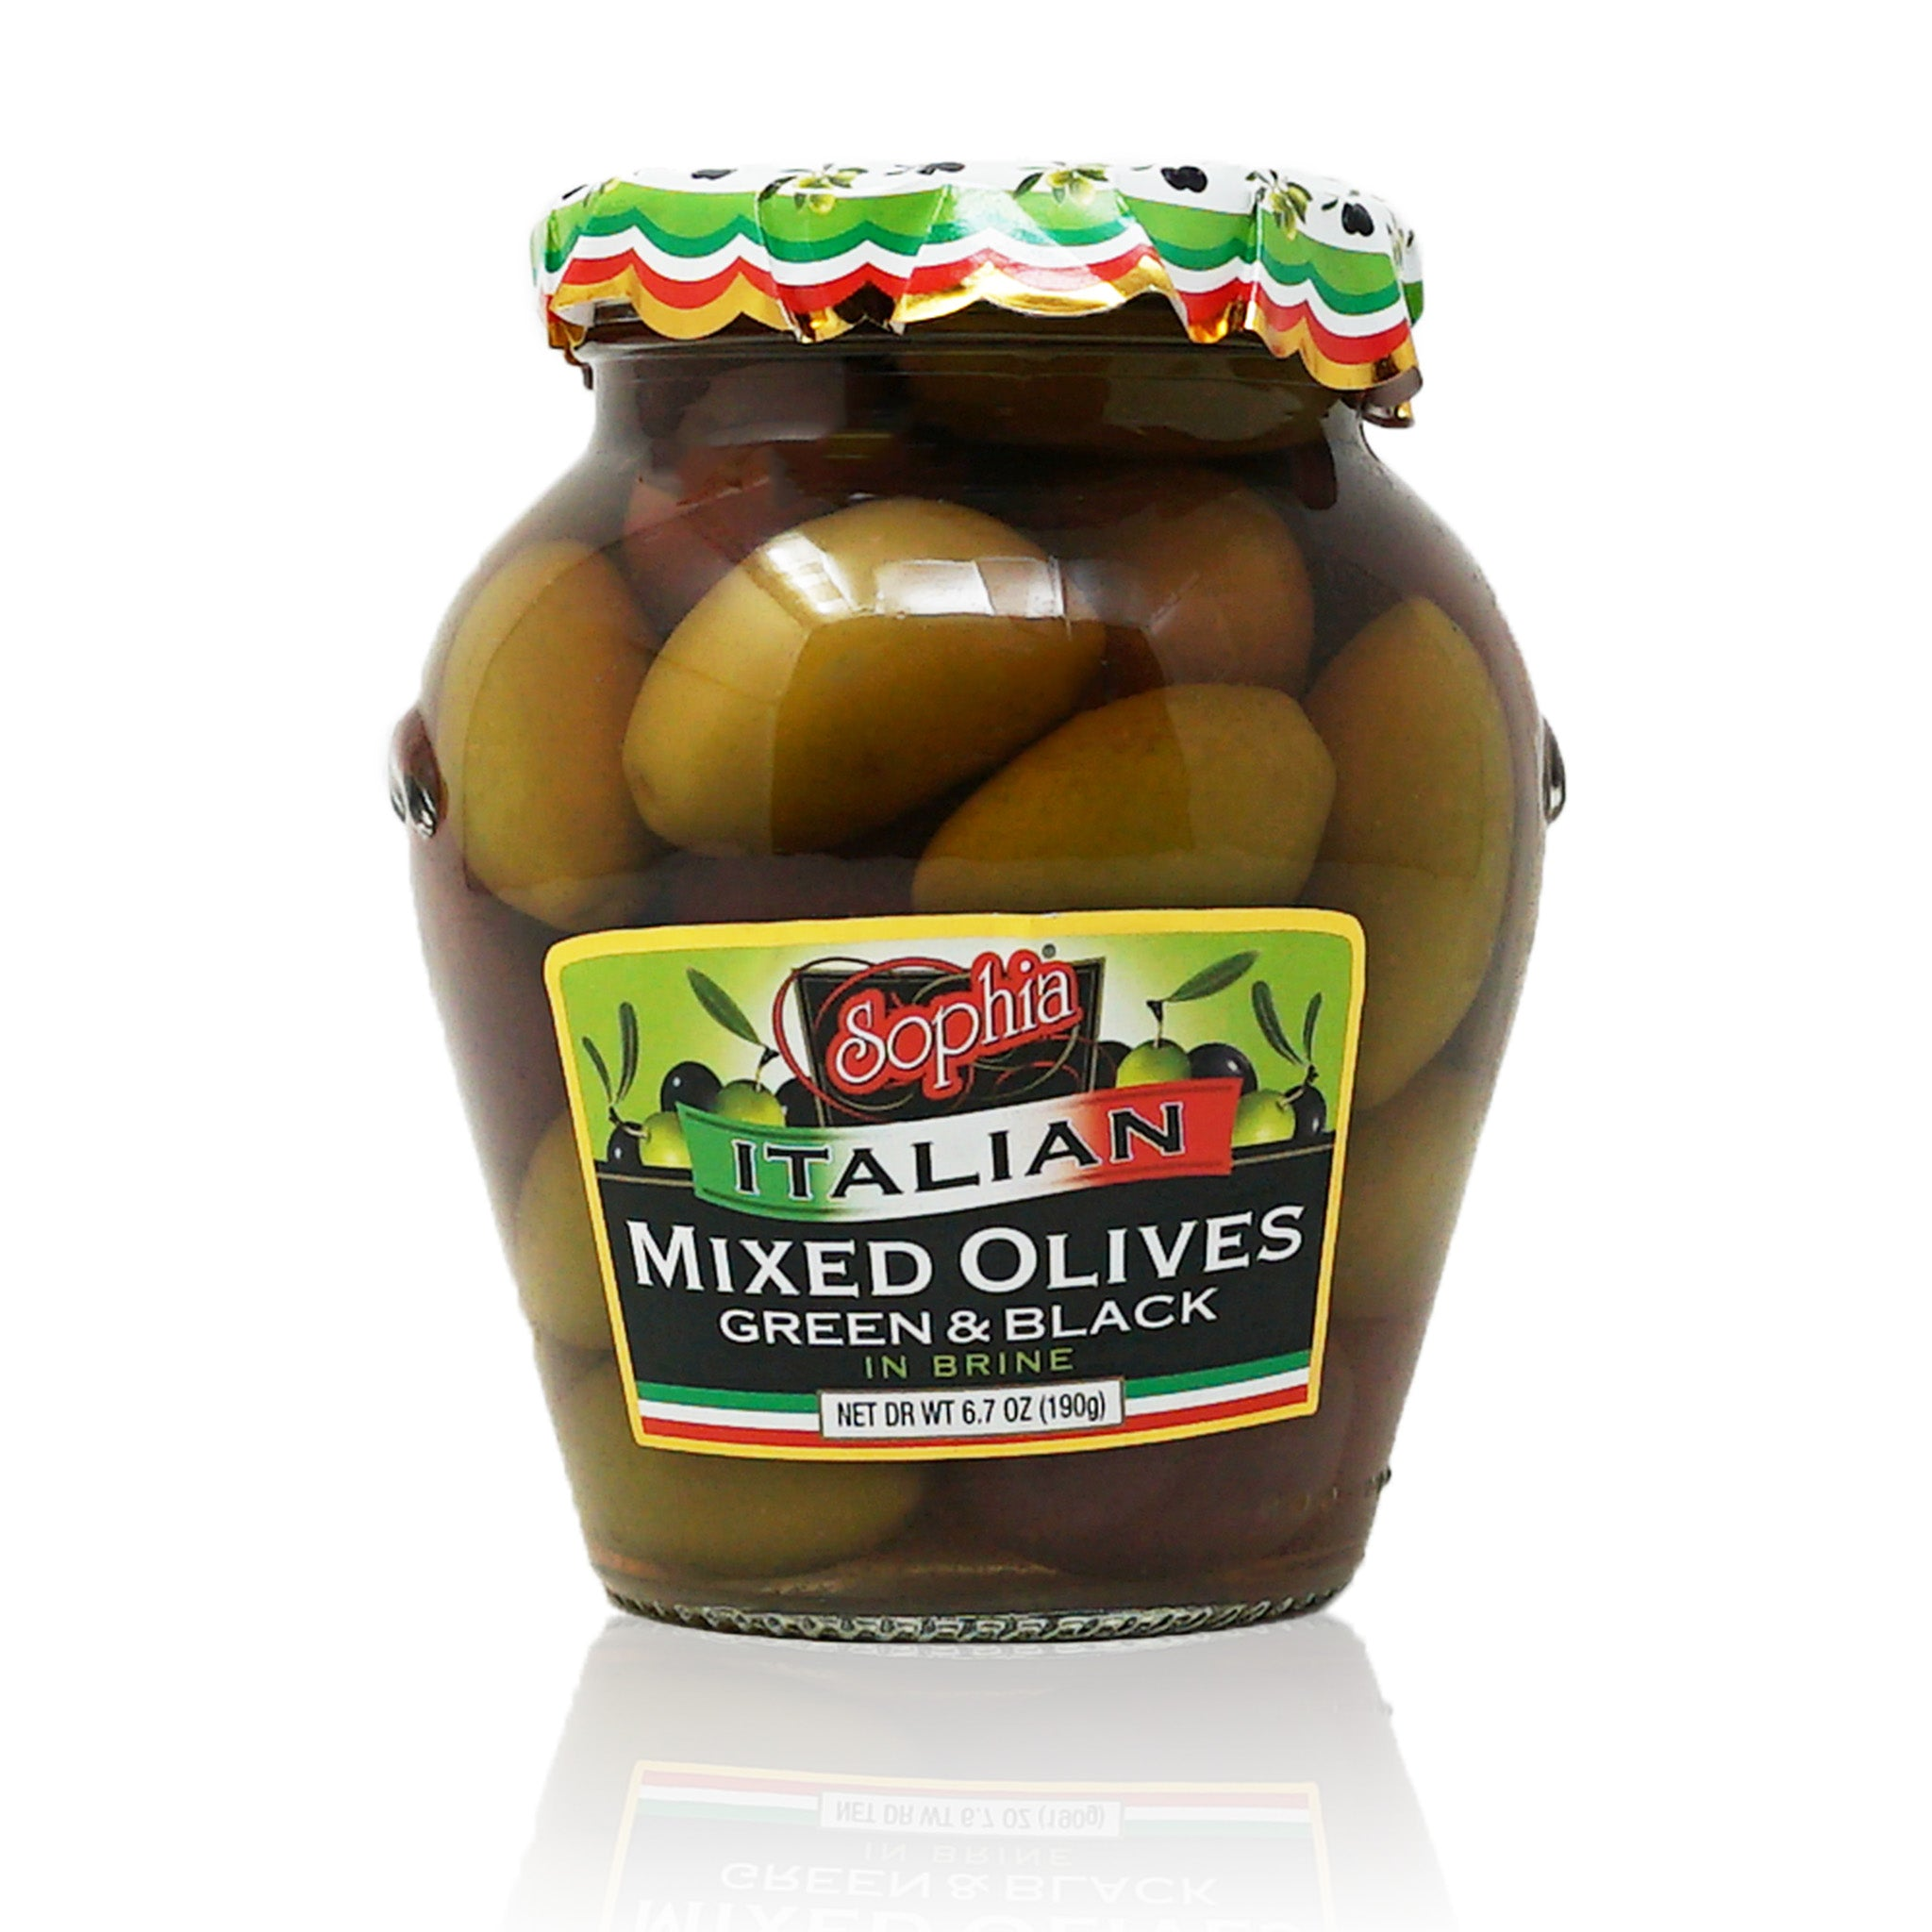 Sophia Italian Olives - Mixed